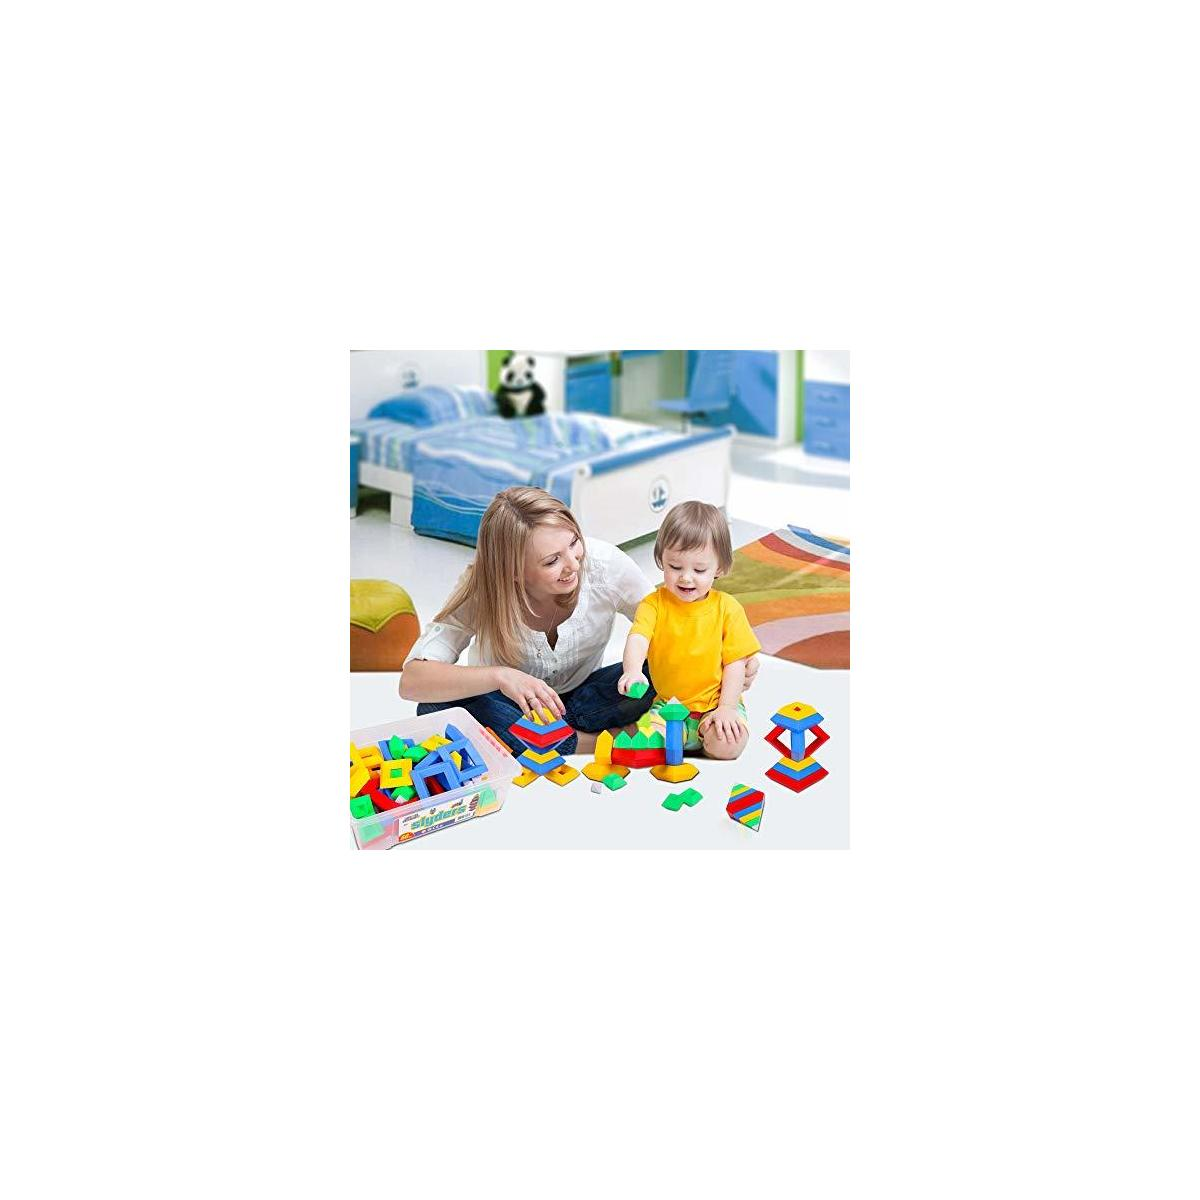 PlayBuild Slyder Set: 60 Pieces 3D Pyramid Building Blocks, Geometric Stacking Toys for Kids Ages 4+ - Creative Early Childhood Educational Toys for Preschool Boys and Girls